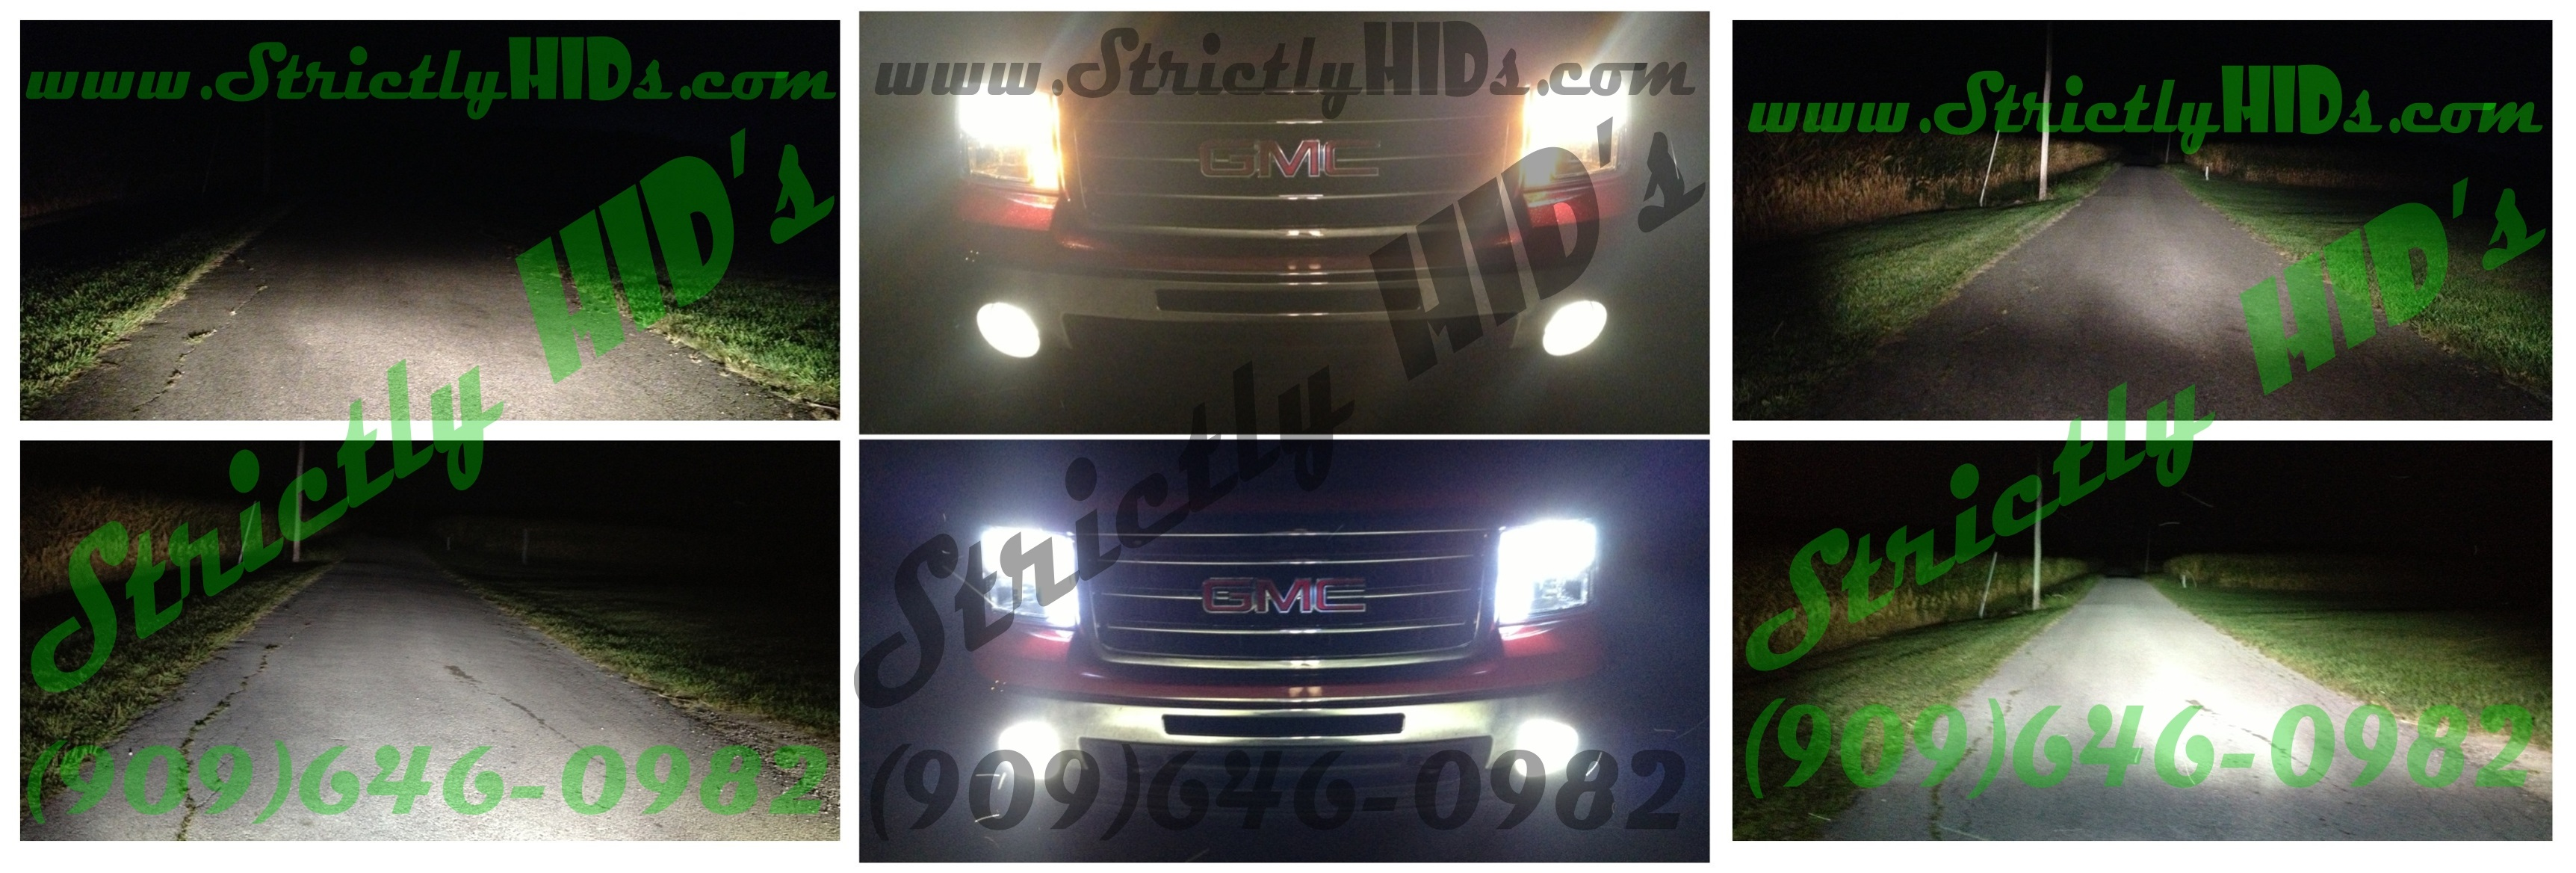 909 646 0982 Full Plug N Play Hid Kits Led Offroad